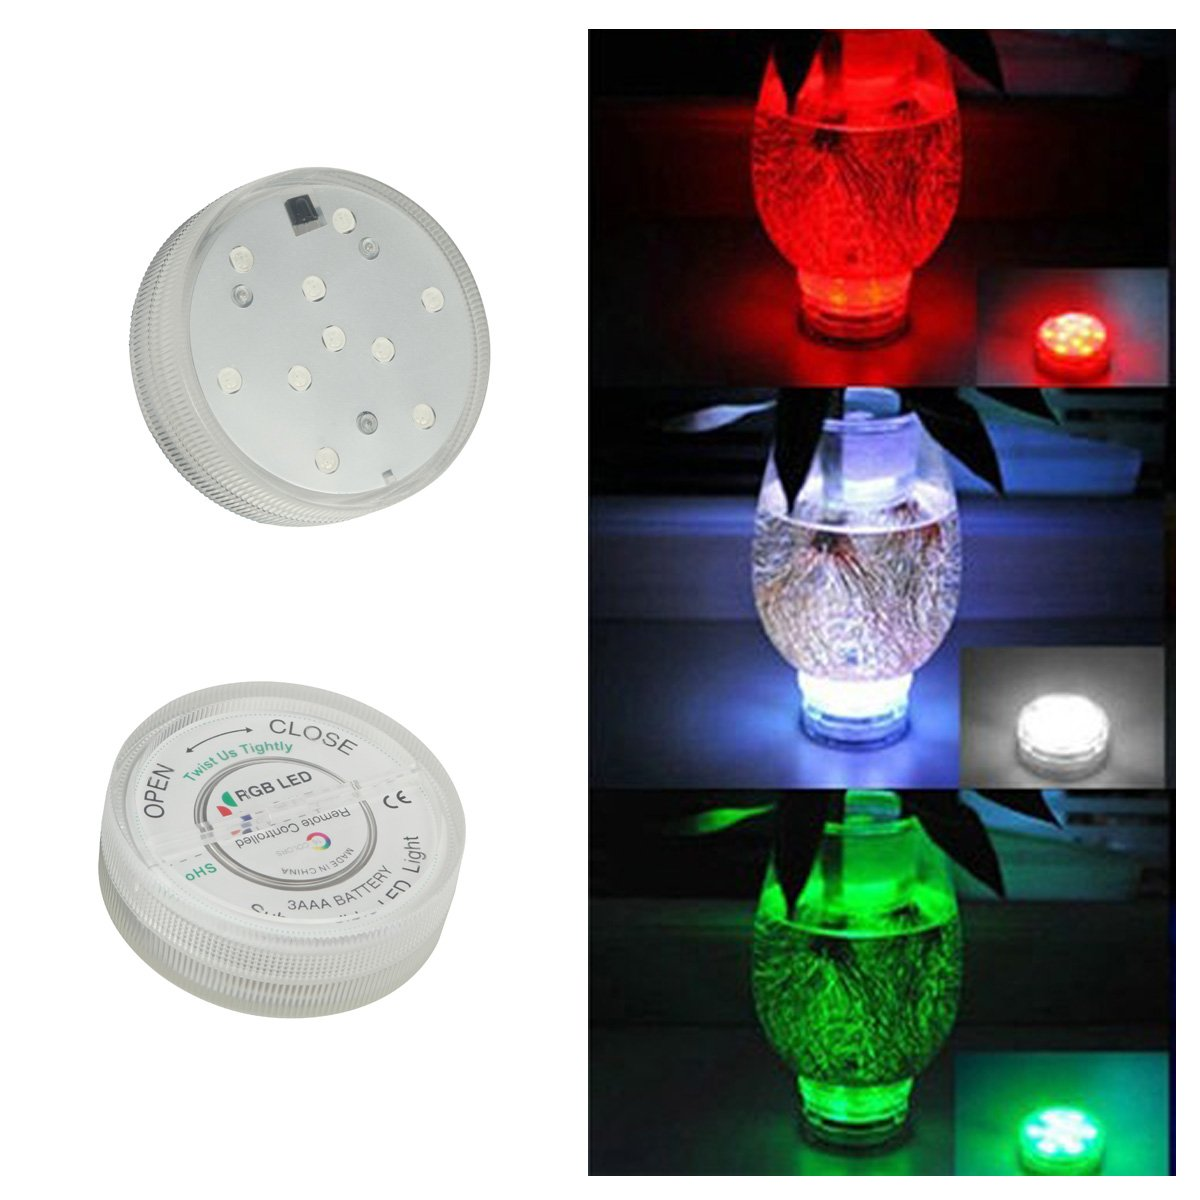 HIOFFER Submersible Led Lights, Multi Color Remote Controlled Submersible LED Lights - 10 LED Controlled Submersible Light, for Aquarium, Pond, Party, Lighting - Round Edge